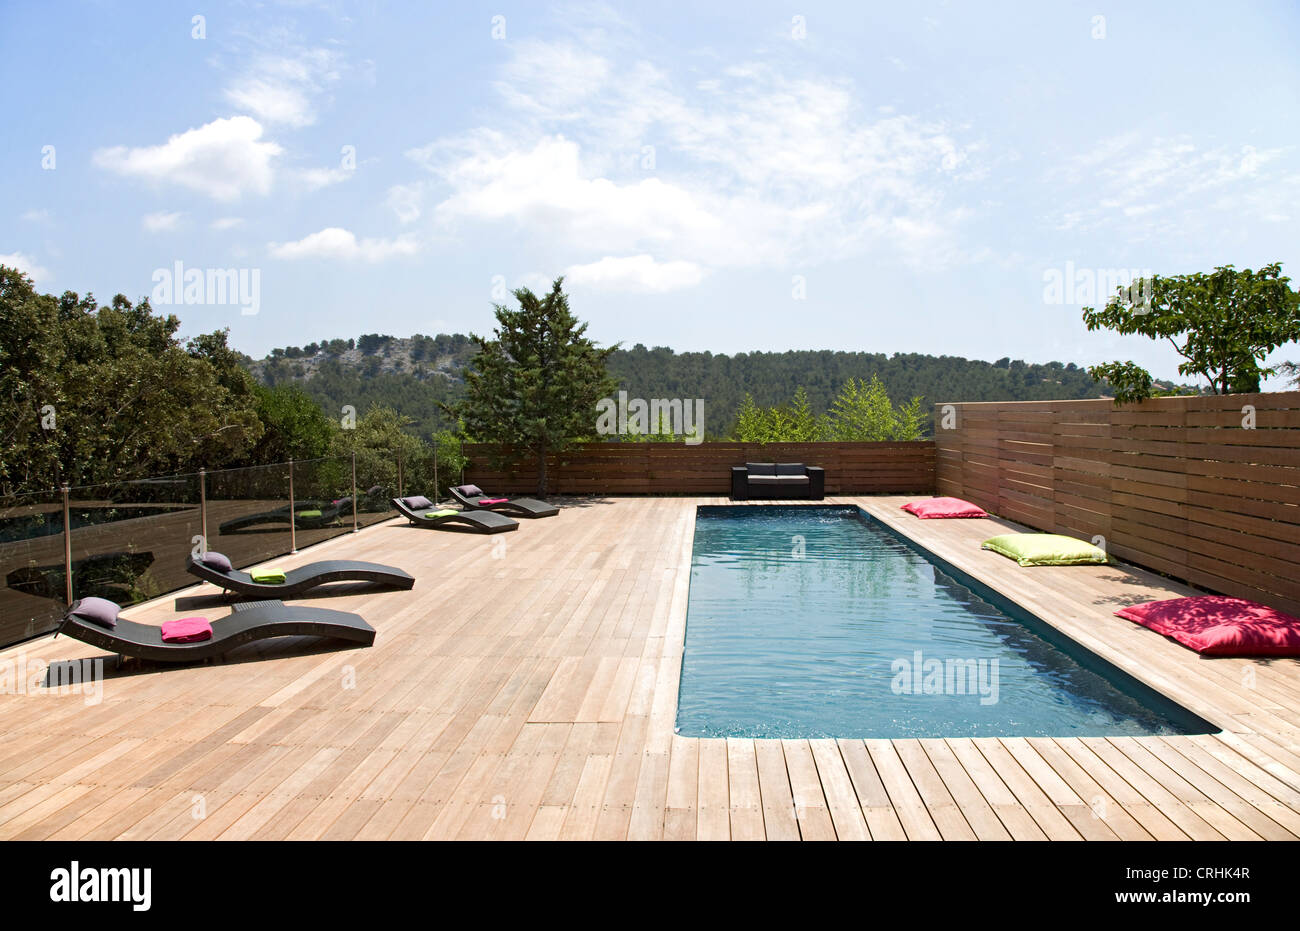 Lawn chairs and pool on modern deck - Stock Image